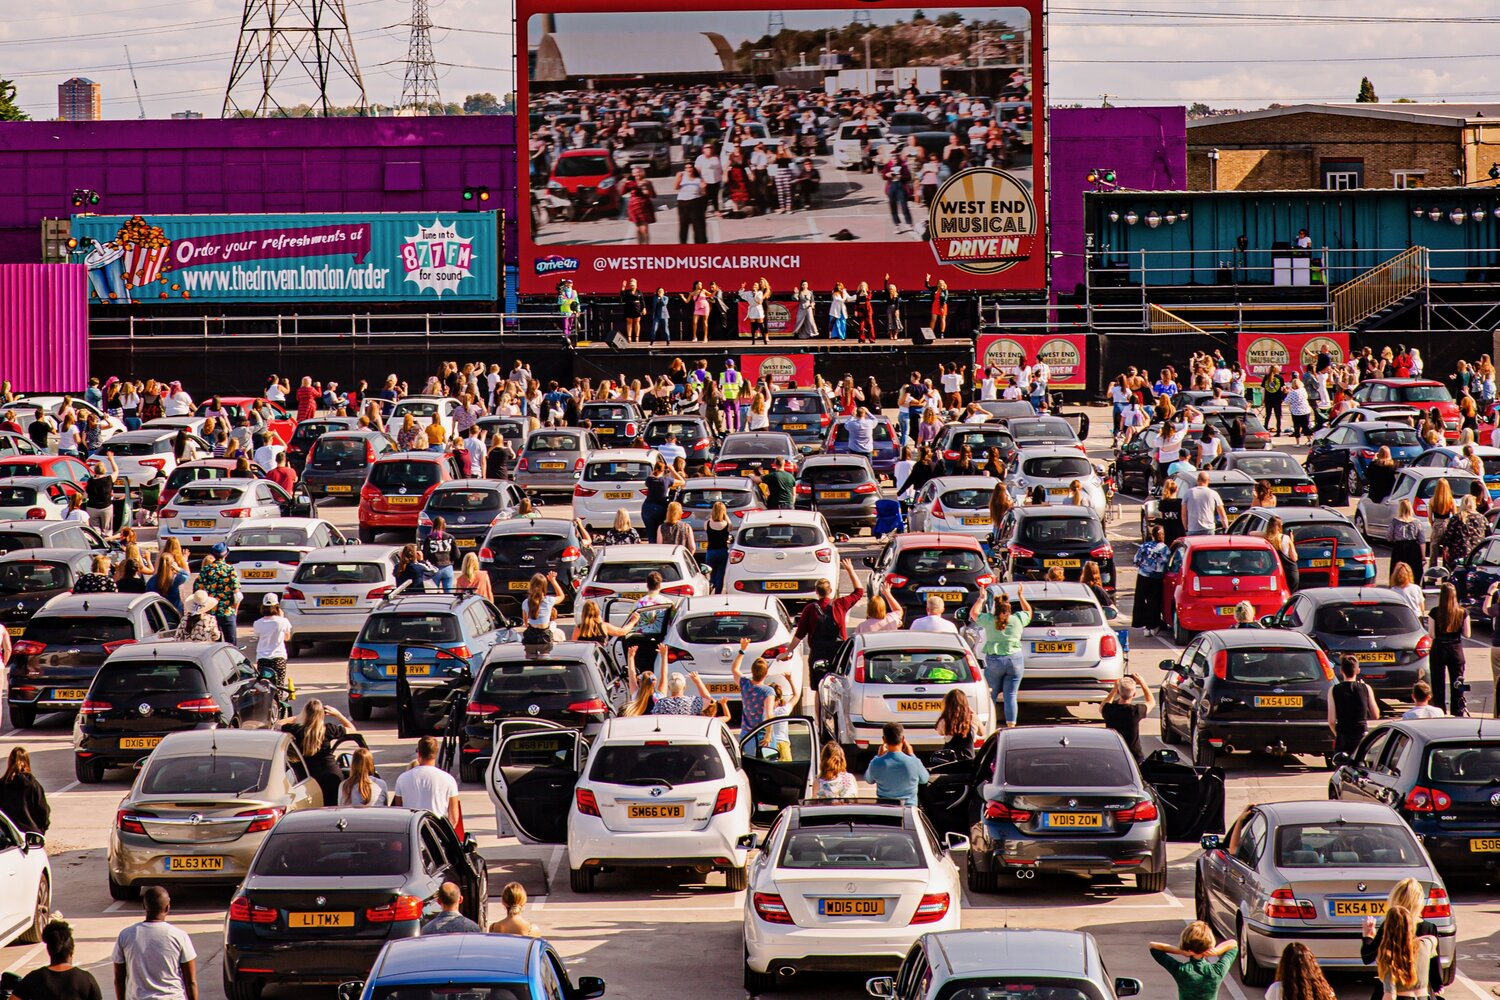 West End Musical Drive-In 2020